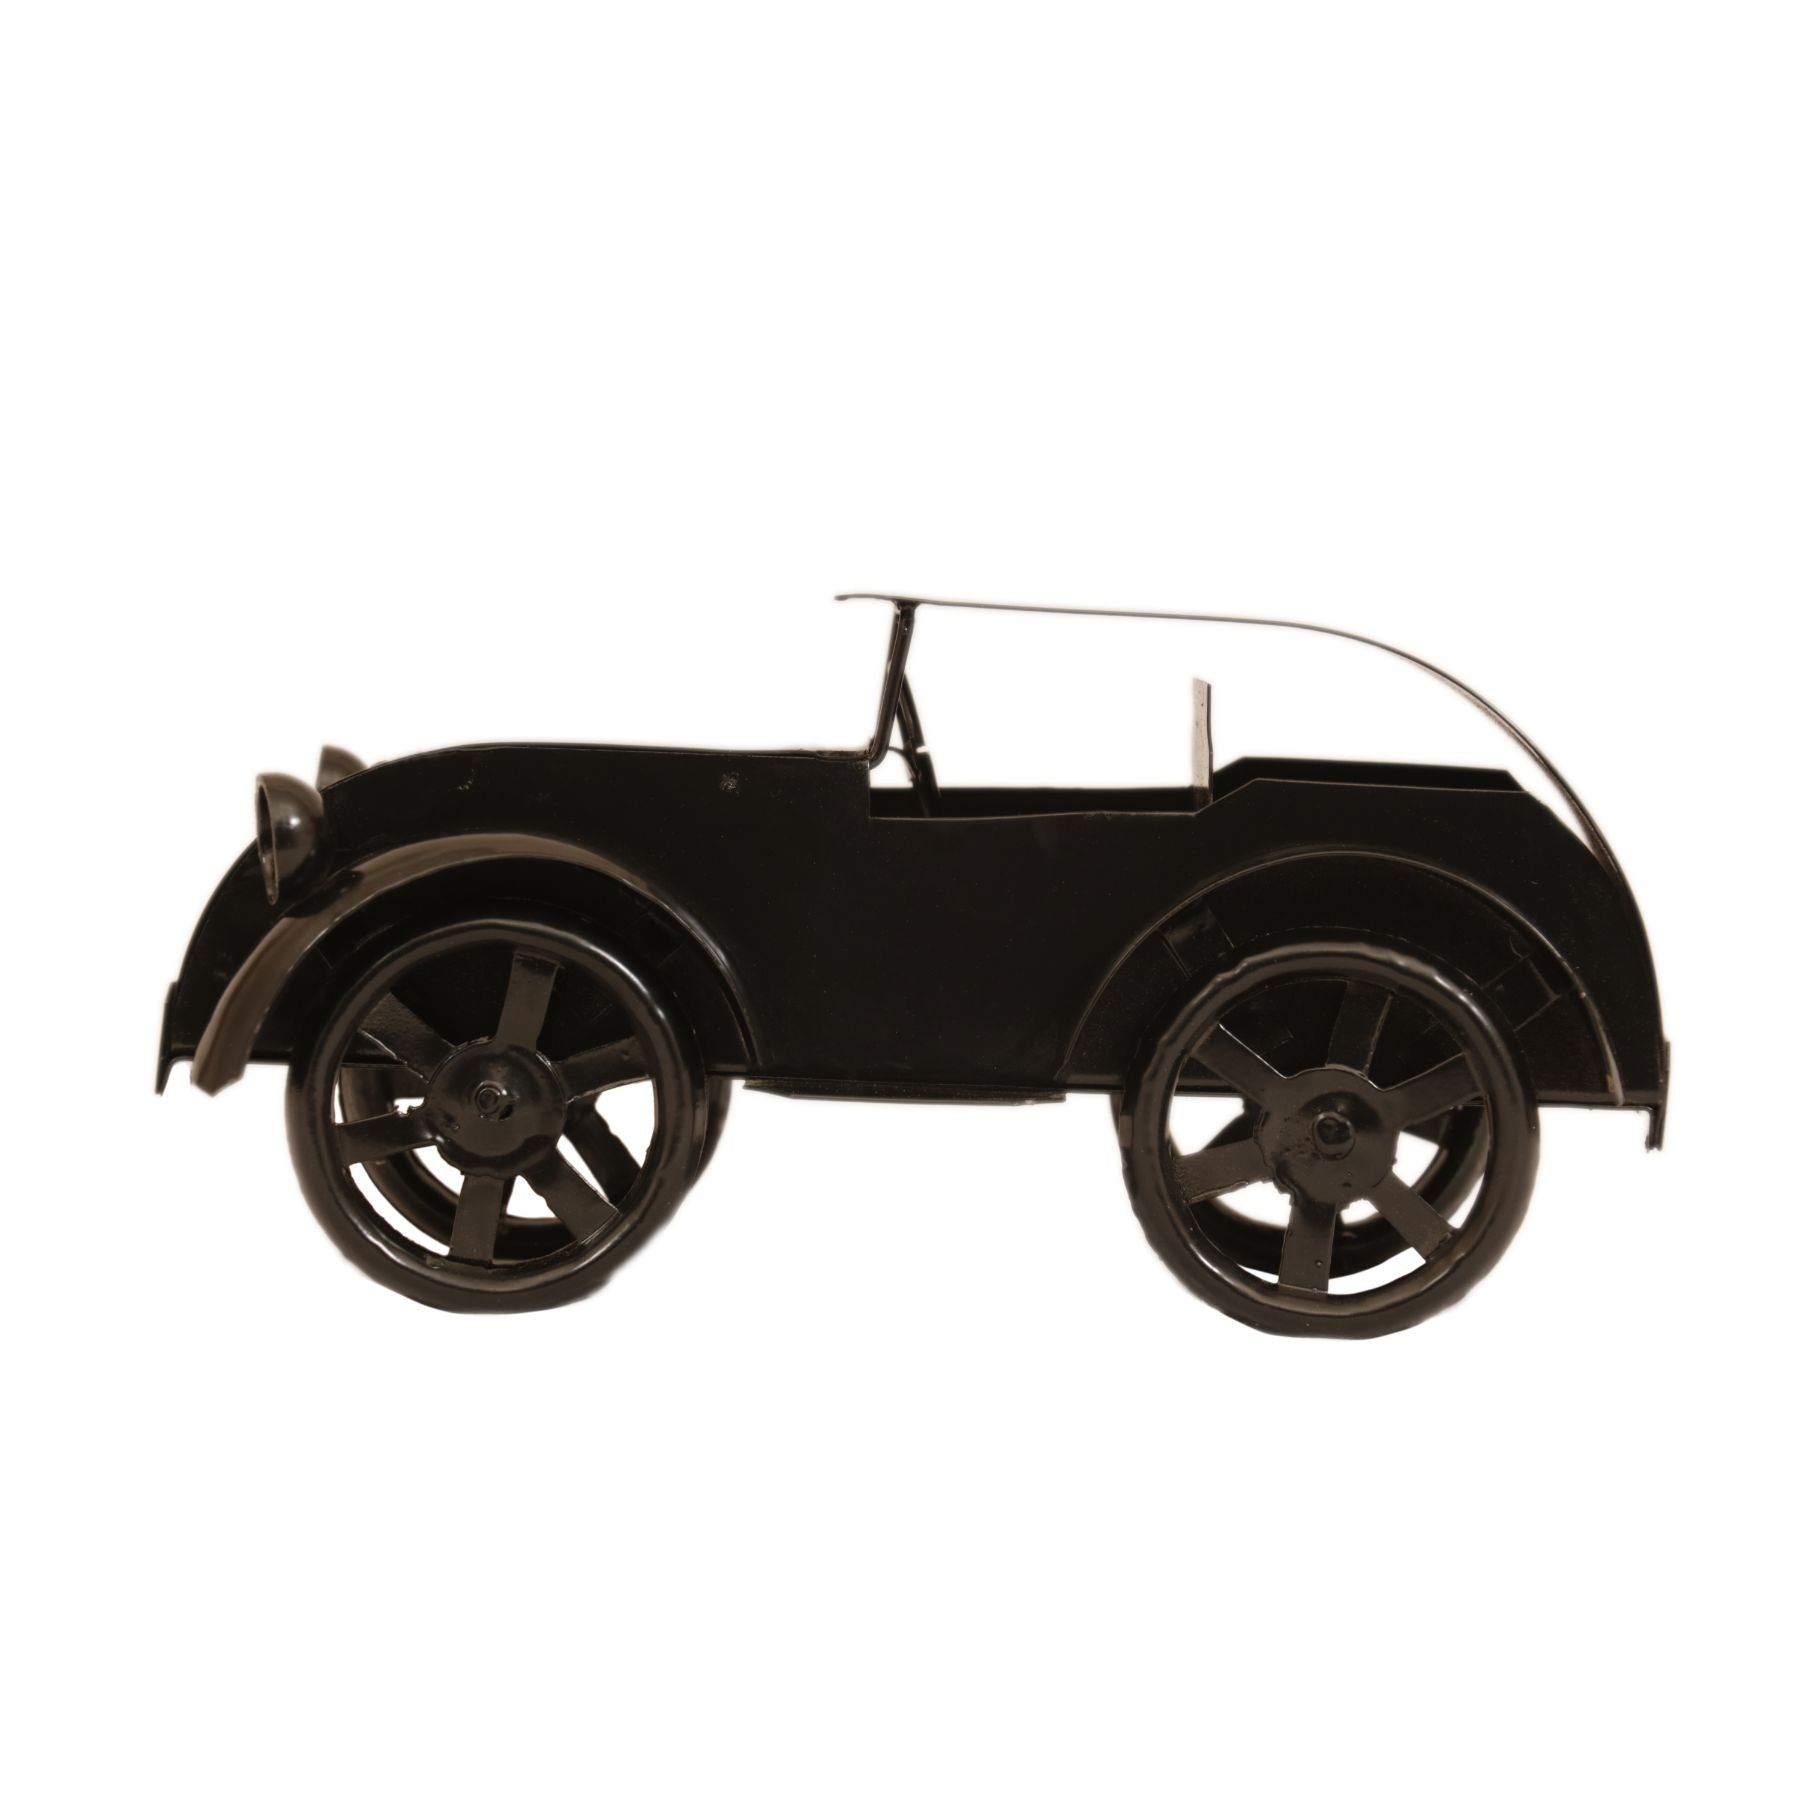 Antiques Metal Miniature Car - Woodsala